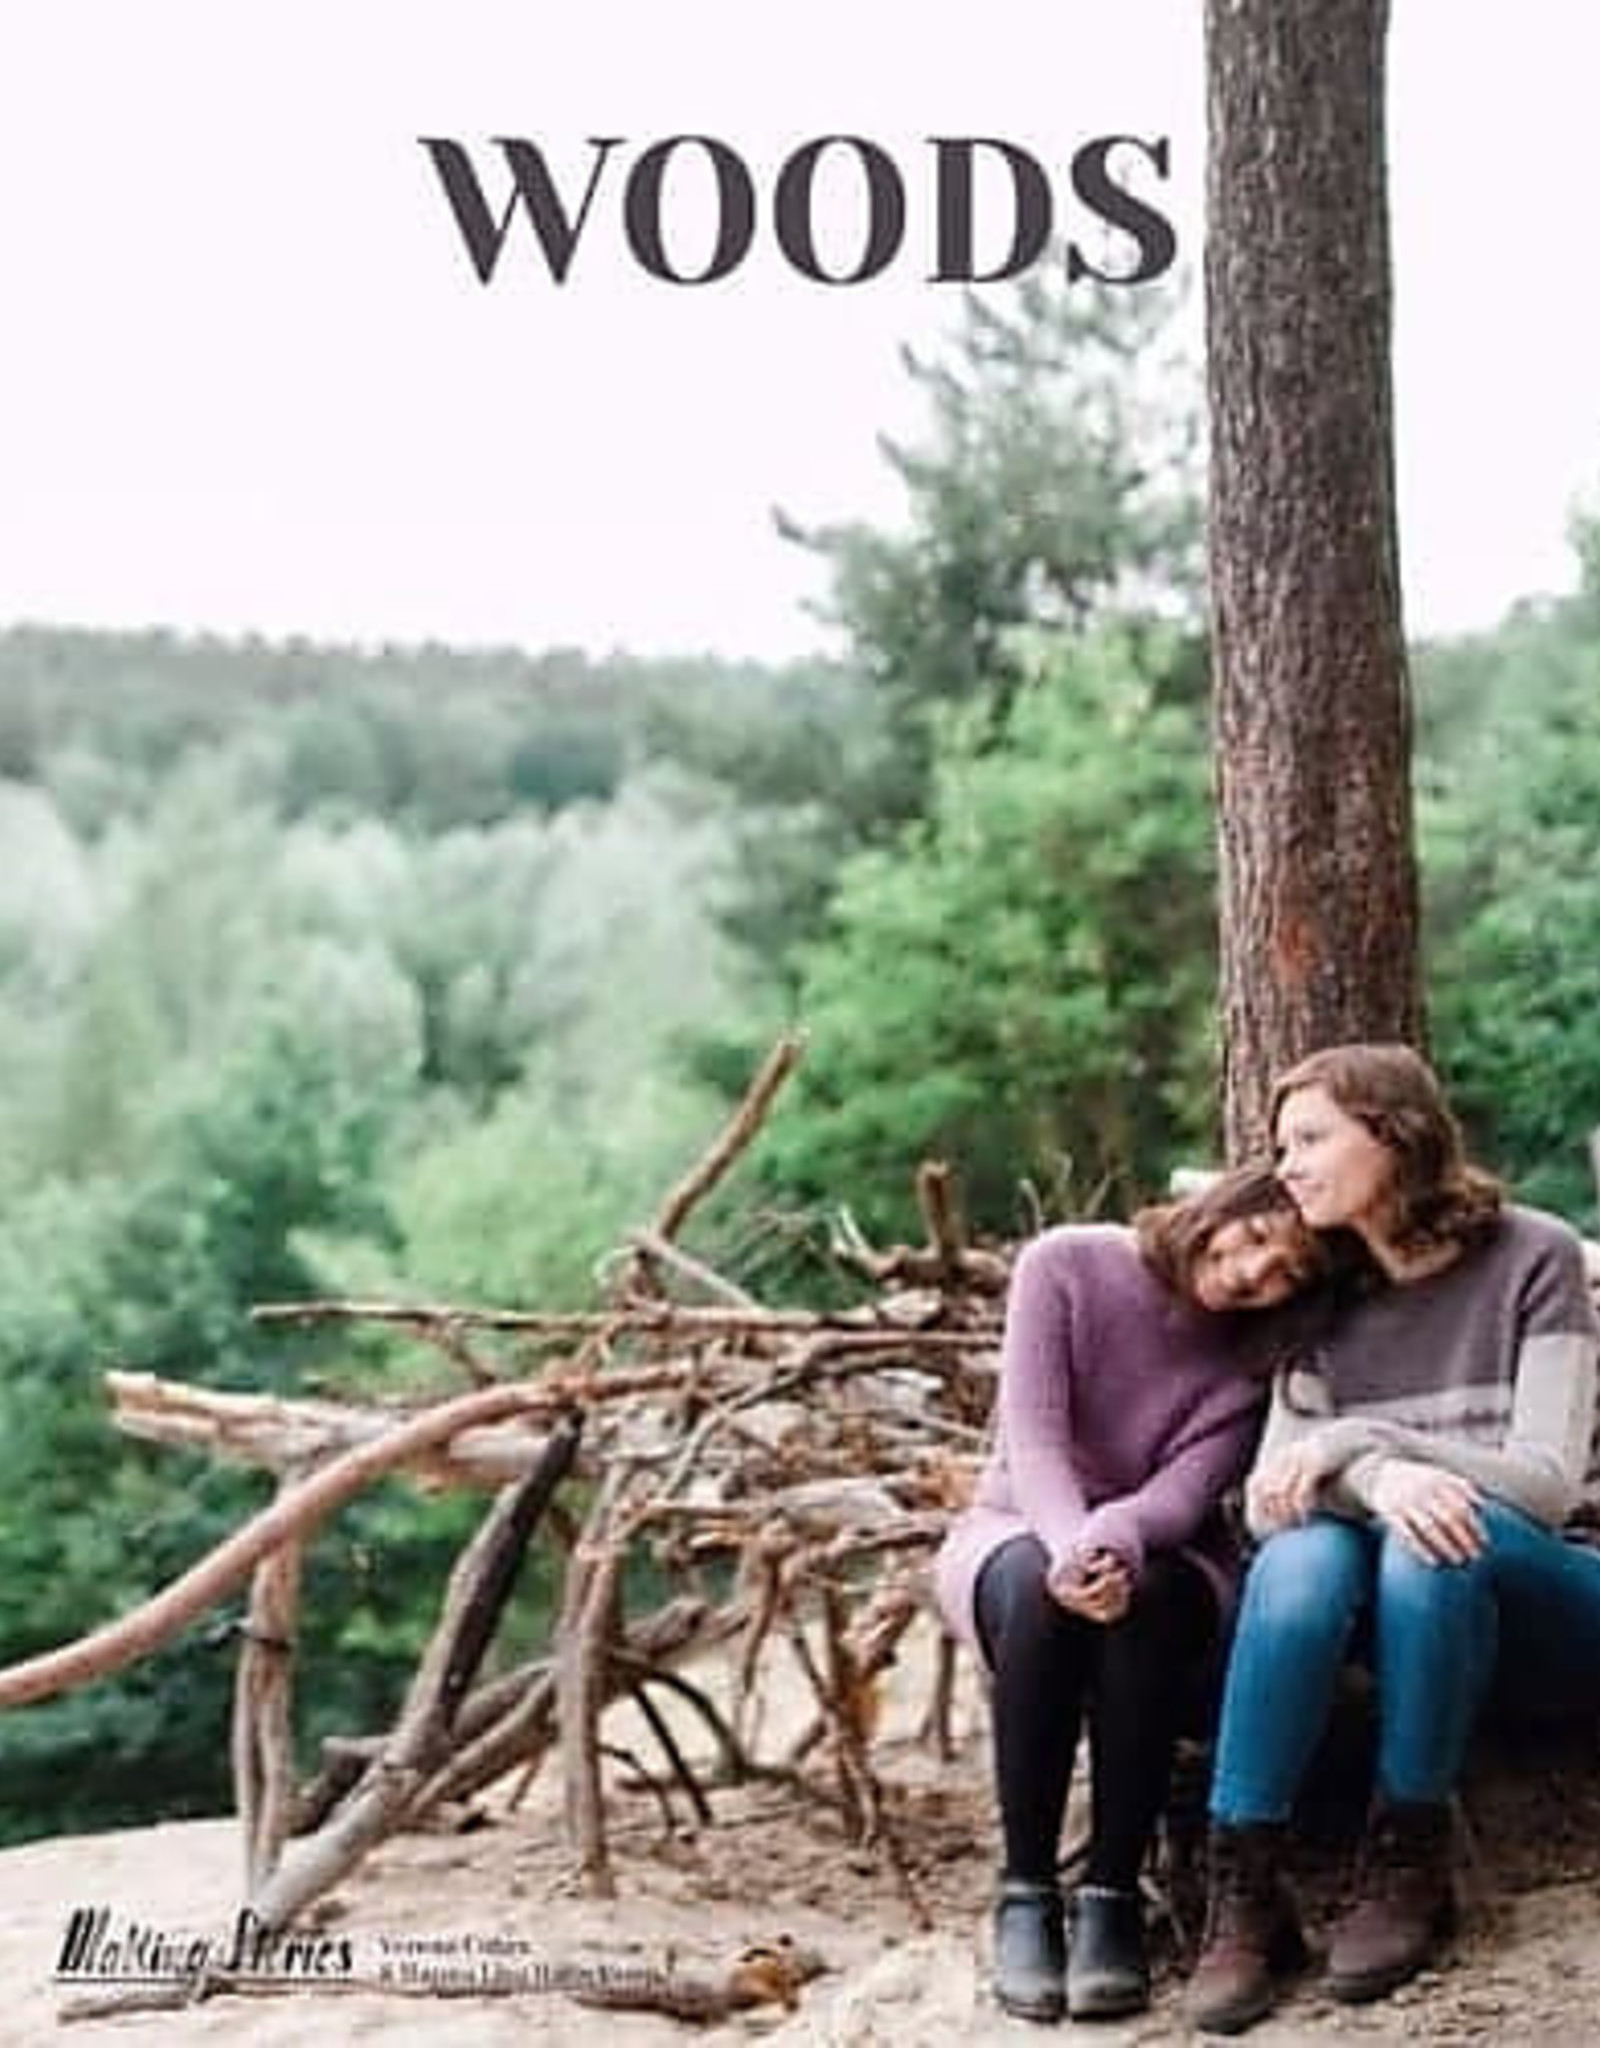 Book - Woods by Making Stories